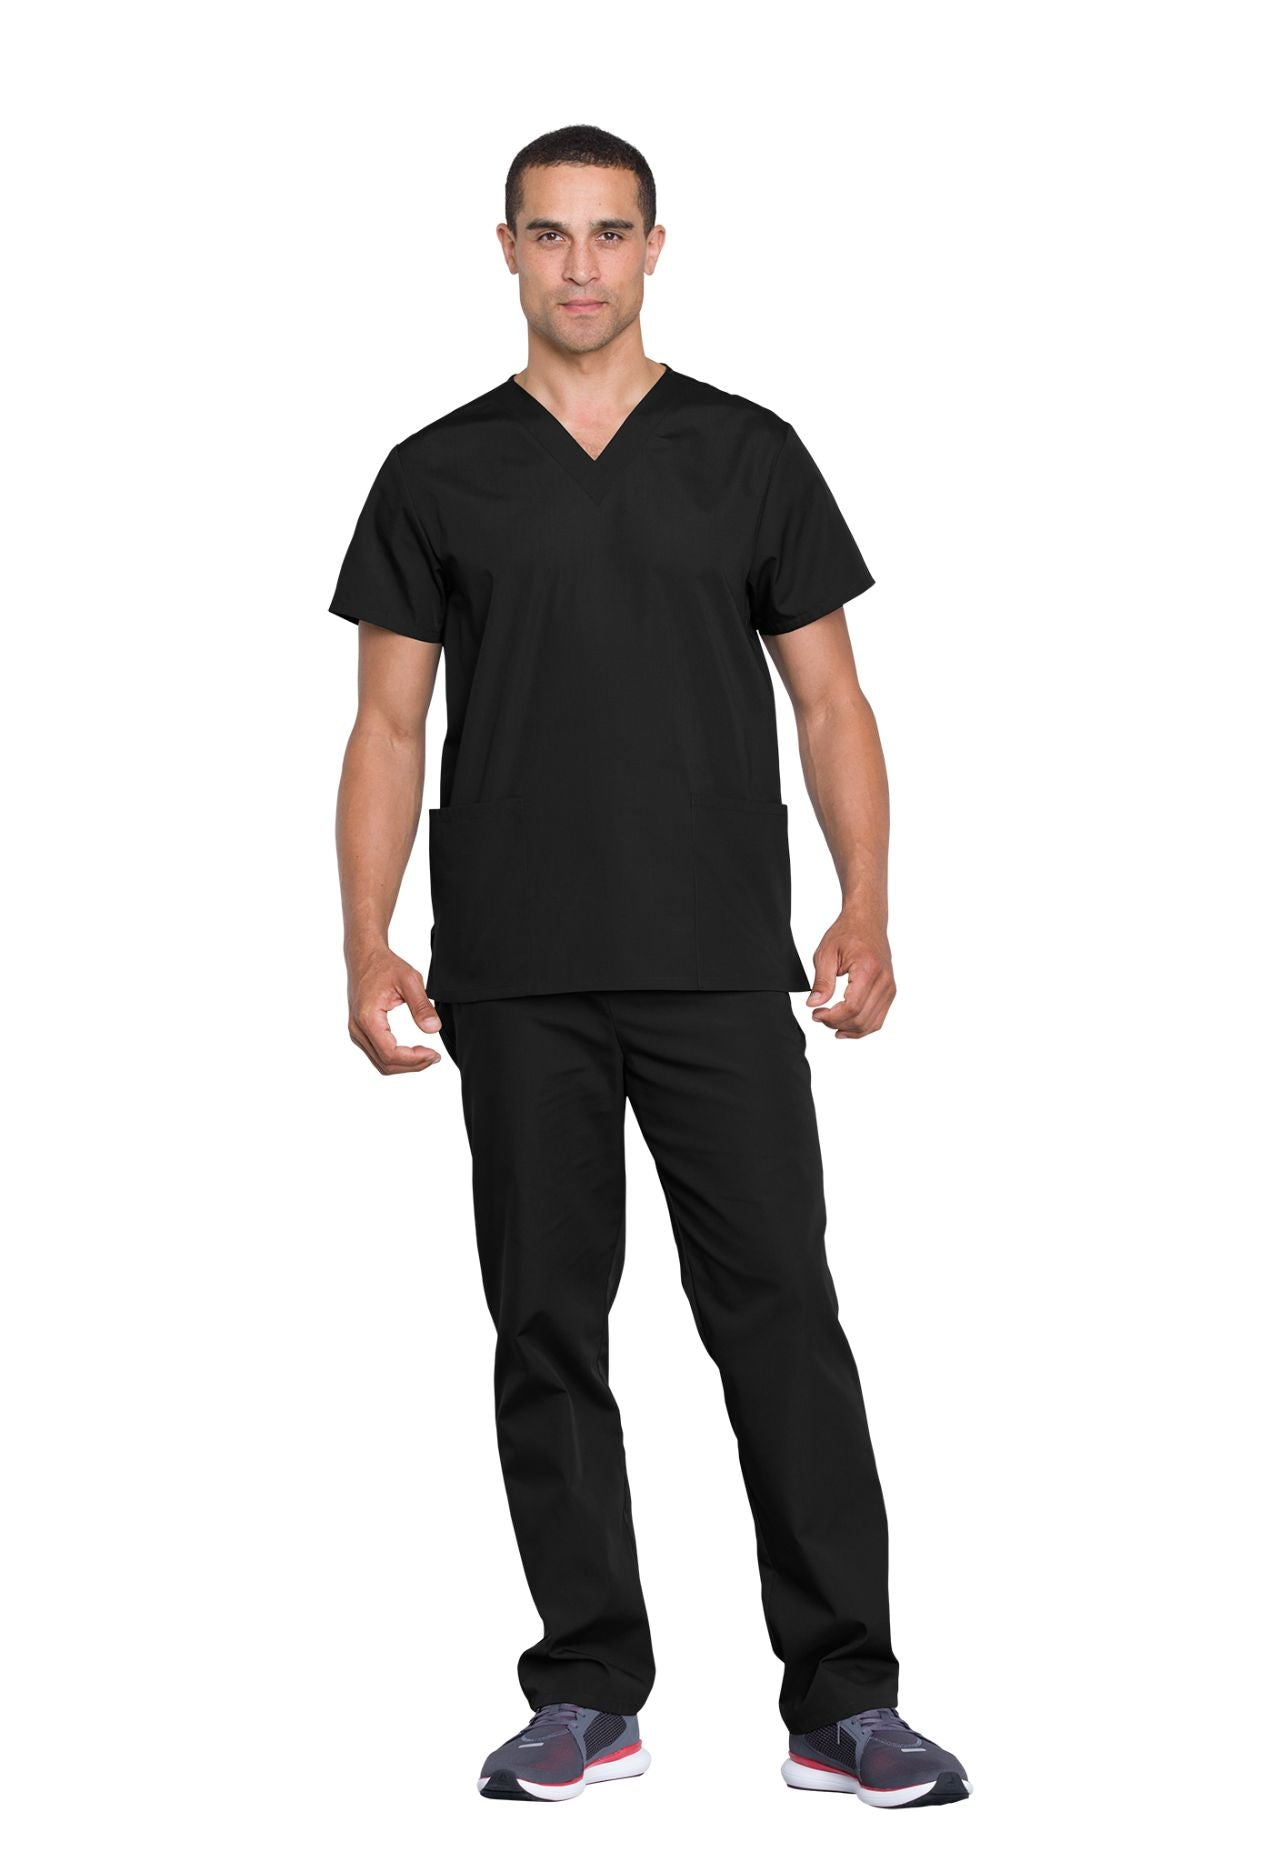 Black - Cherokee Workwear Originals Unisex Top and Pant Set